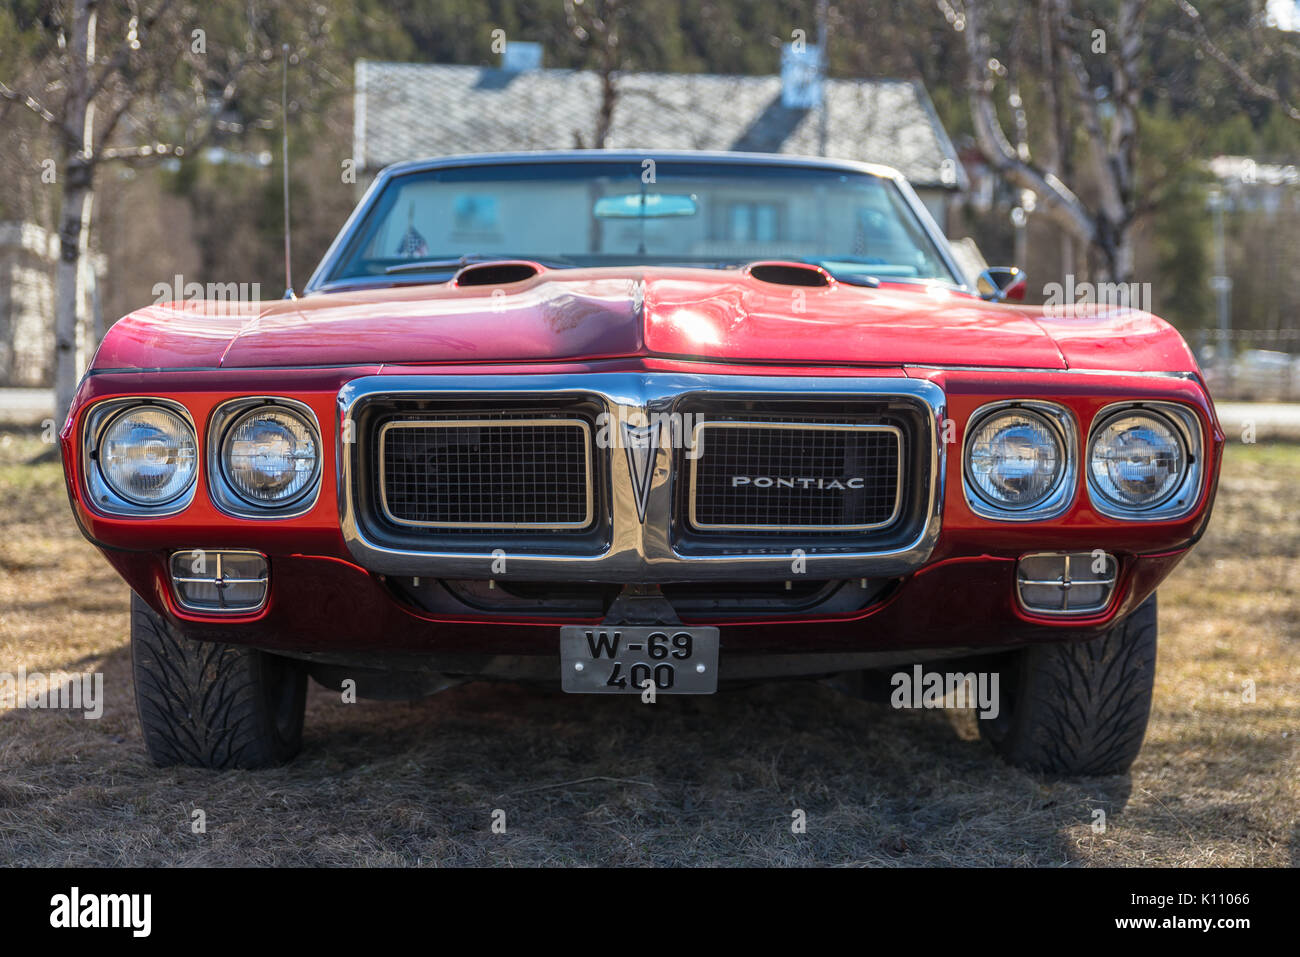 Old Muscle Car Stock Photos & Old Muscle Car Stock Images - Alamy